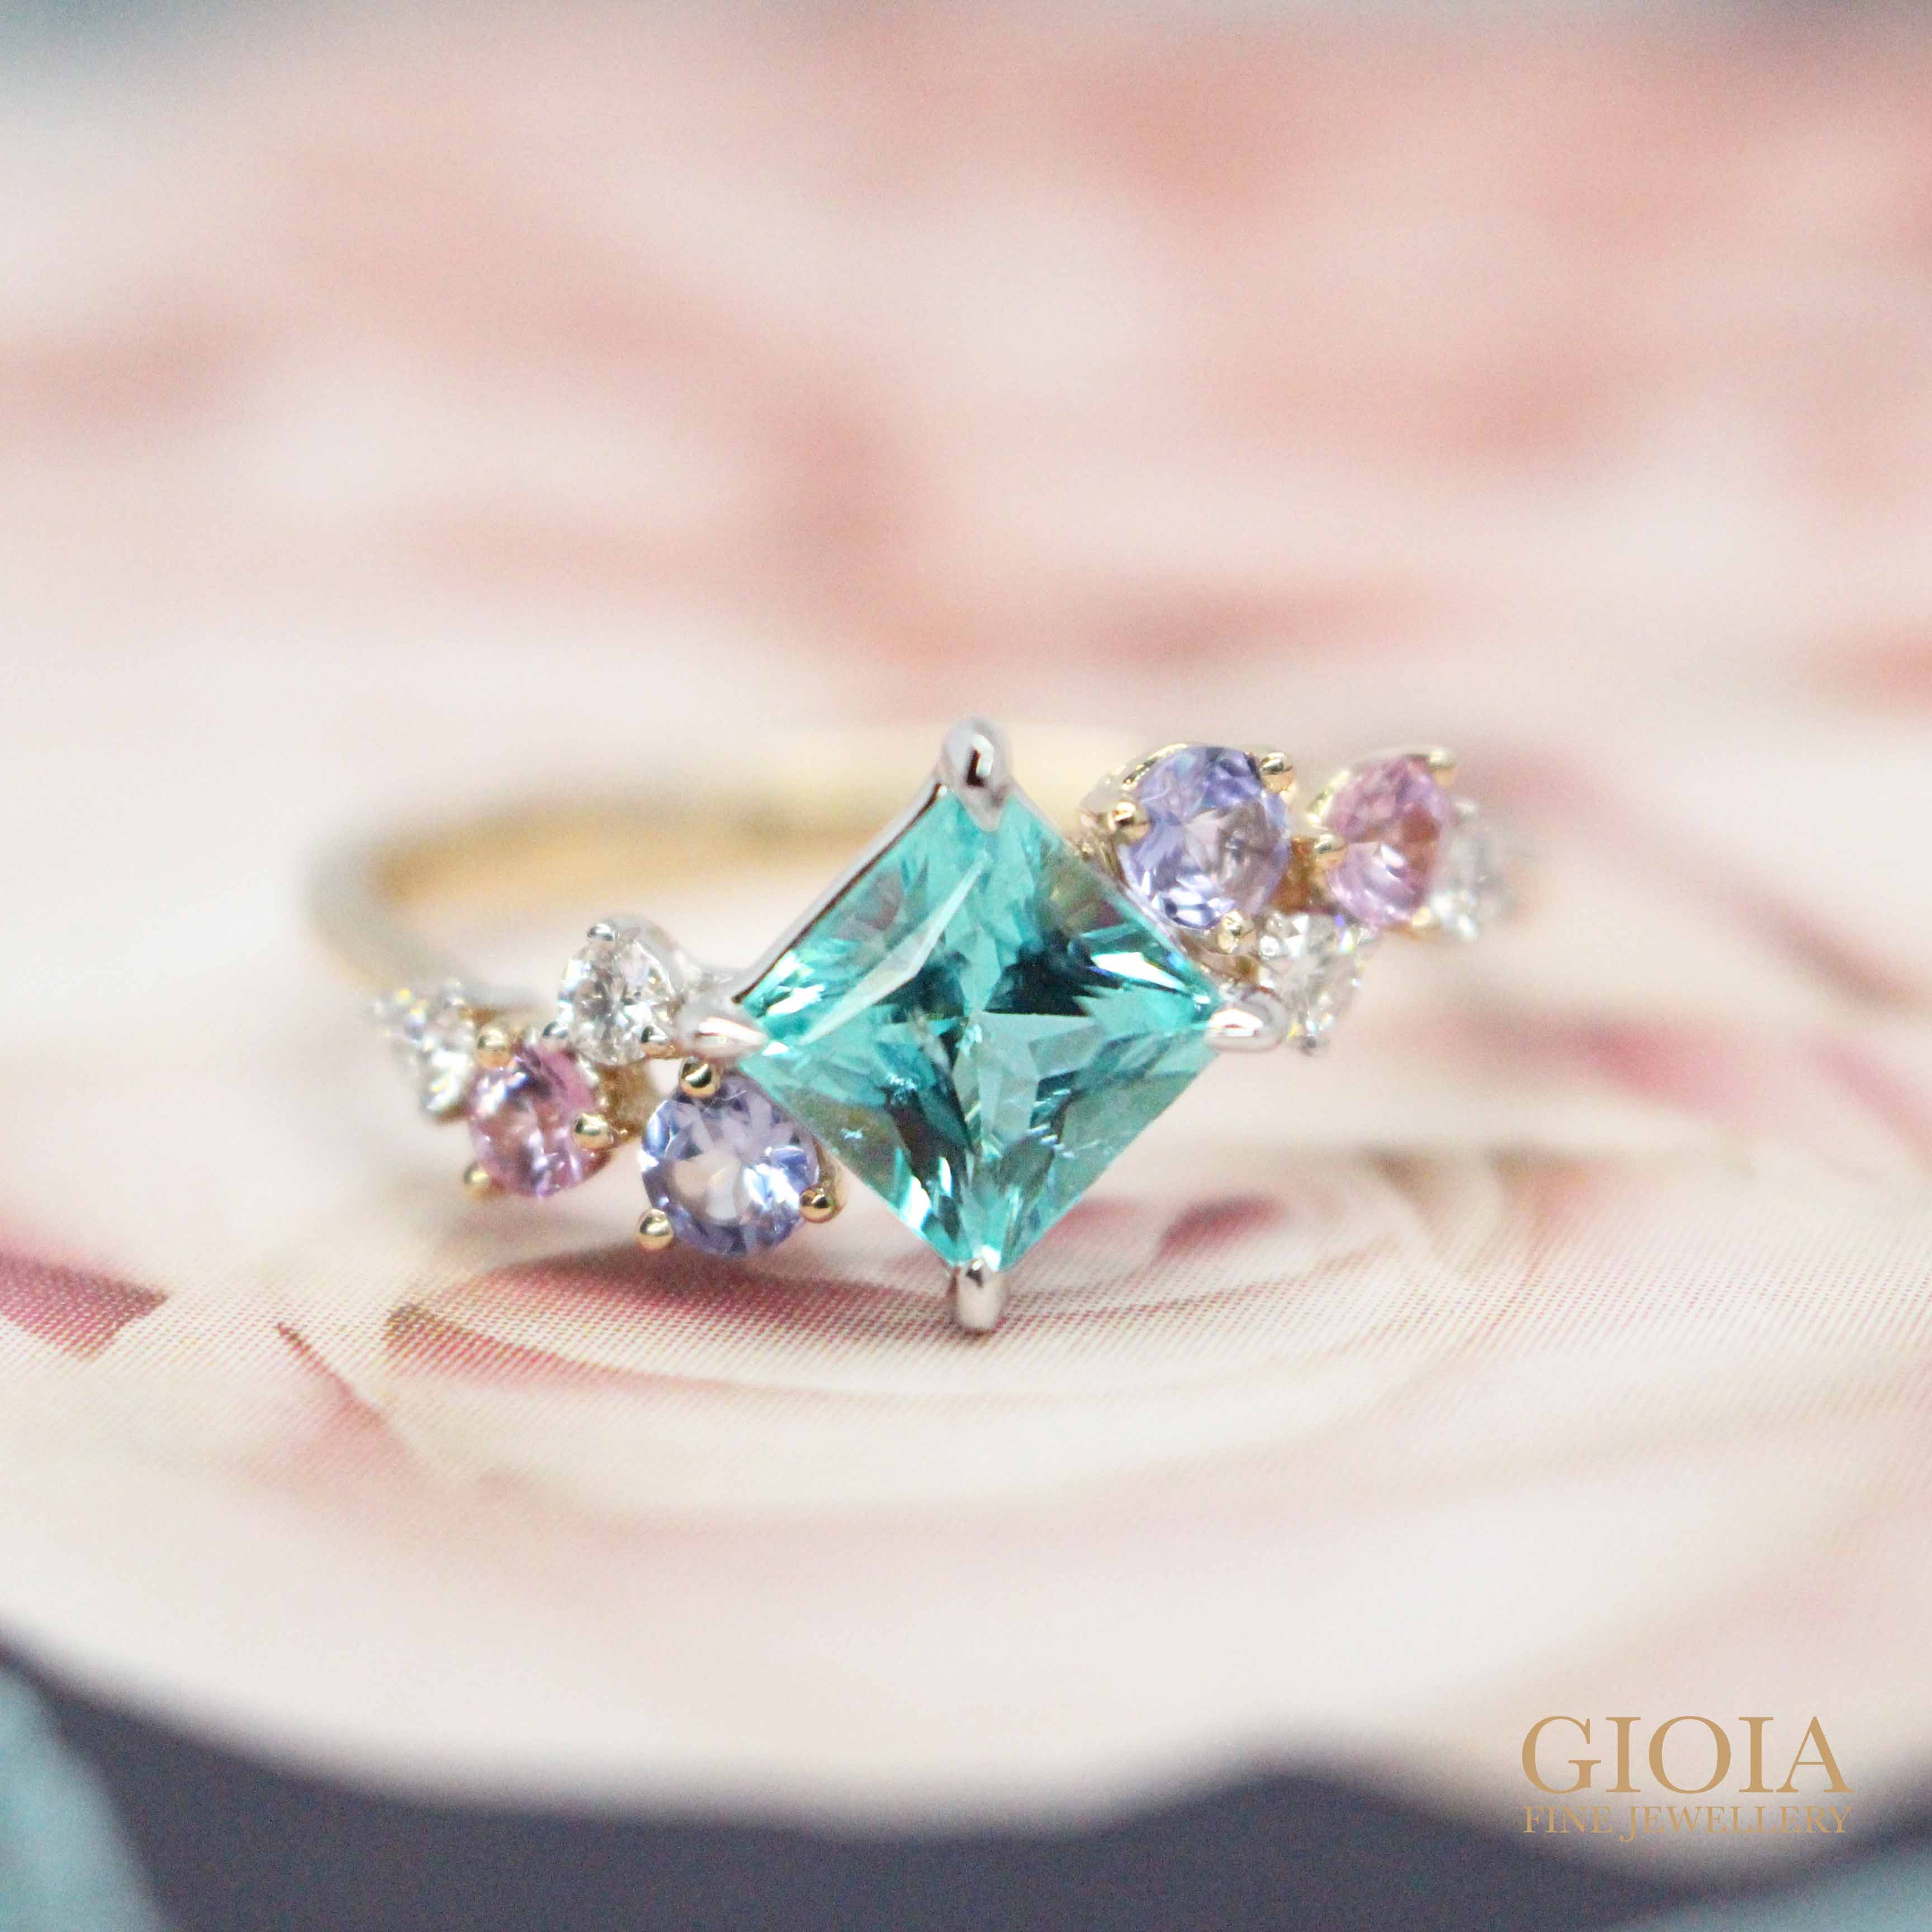 Paraiba & blue and pink Coloured Sapphire Gemstone Ring, unique anniversary gift - Customized with brazil or Mozambique paraiba tourmaline gemstone | Local Singapore customised jeweler